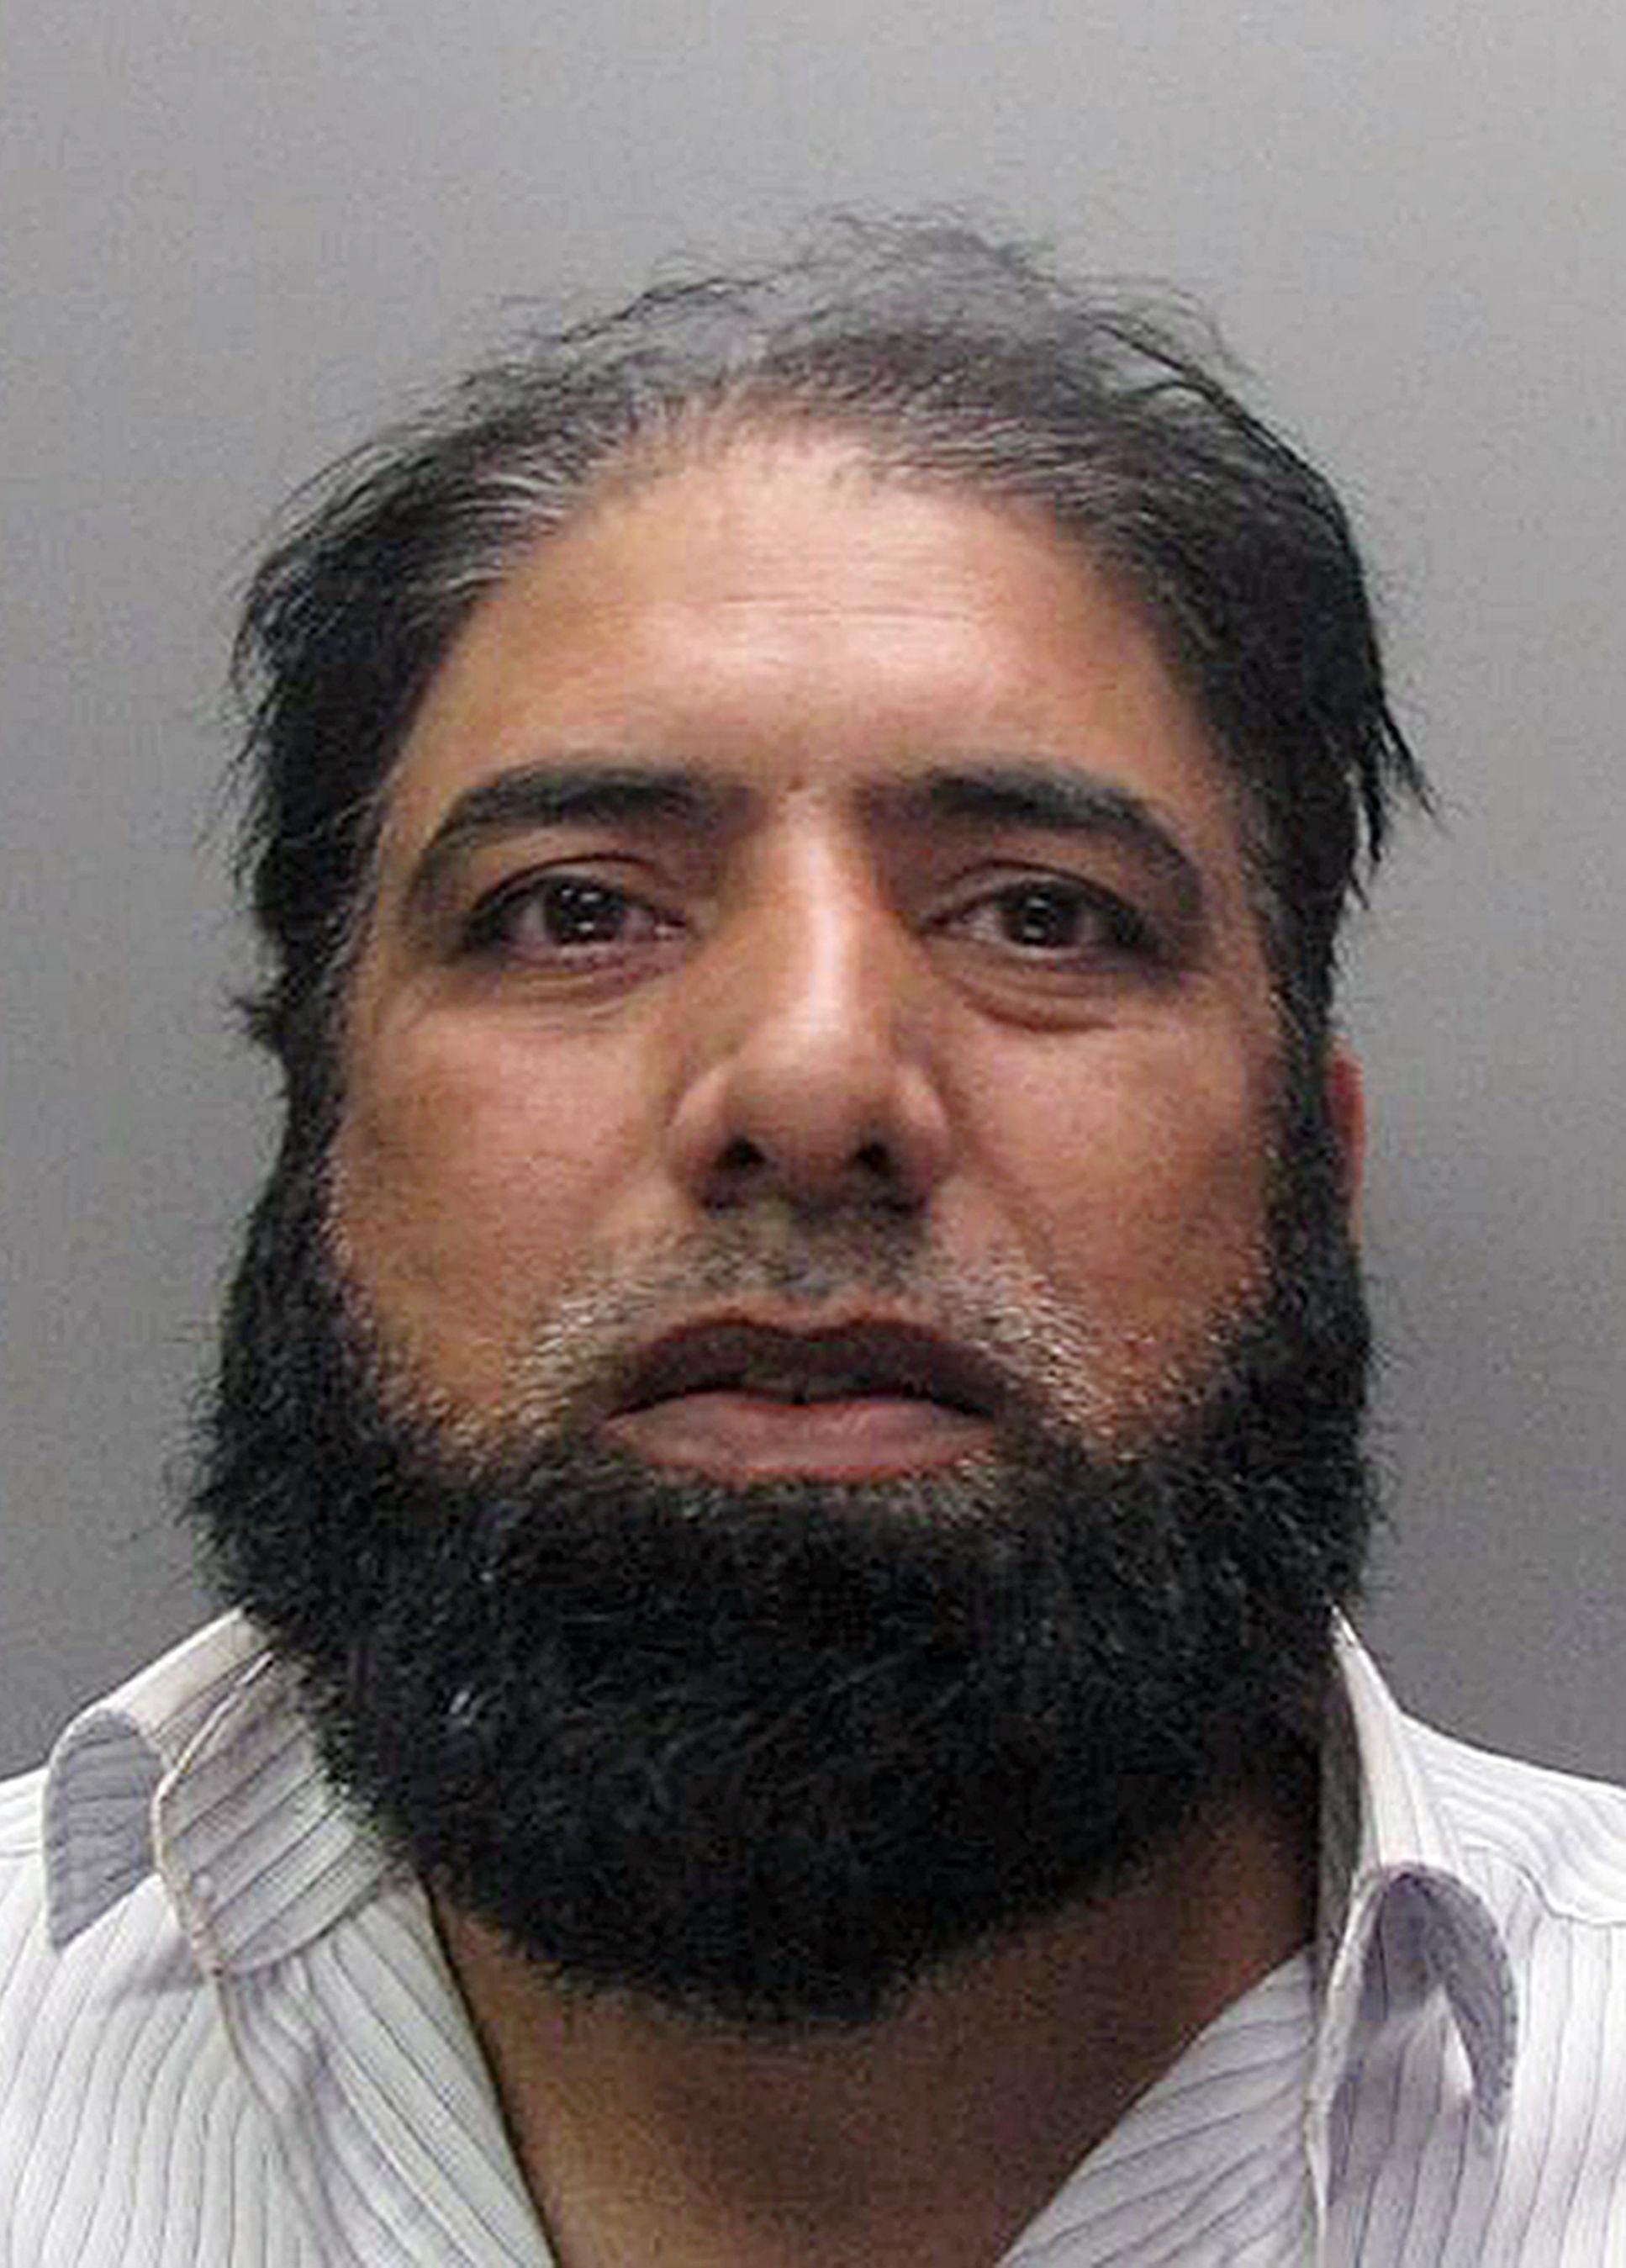 Man jailed for sex with 14-year-old girl